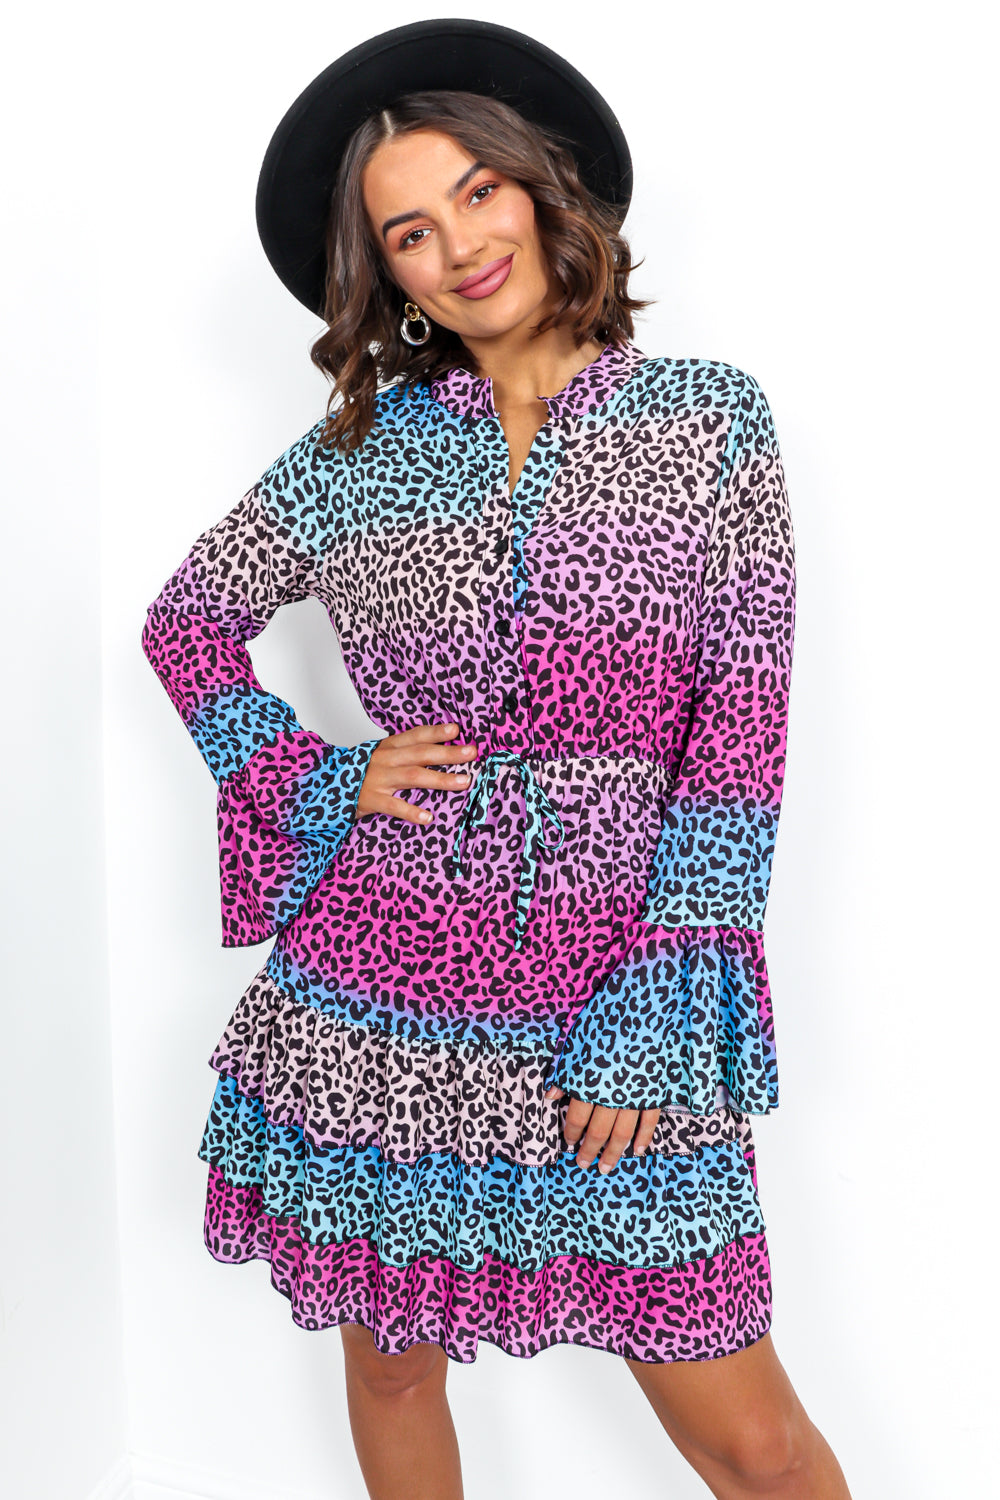 Animal Instincts - Dress In MULTI/LEOPARD